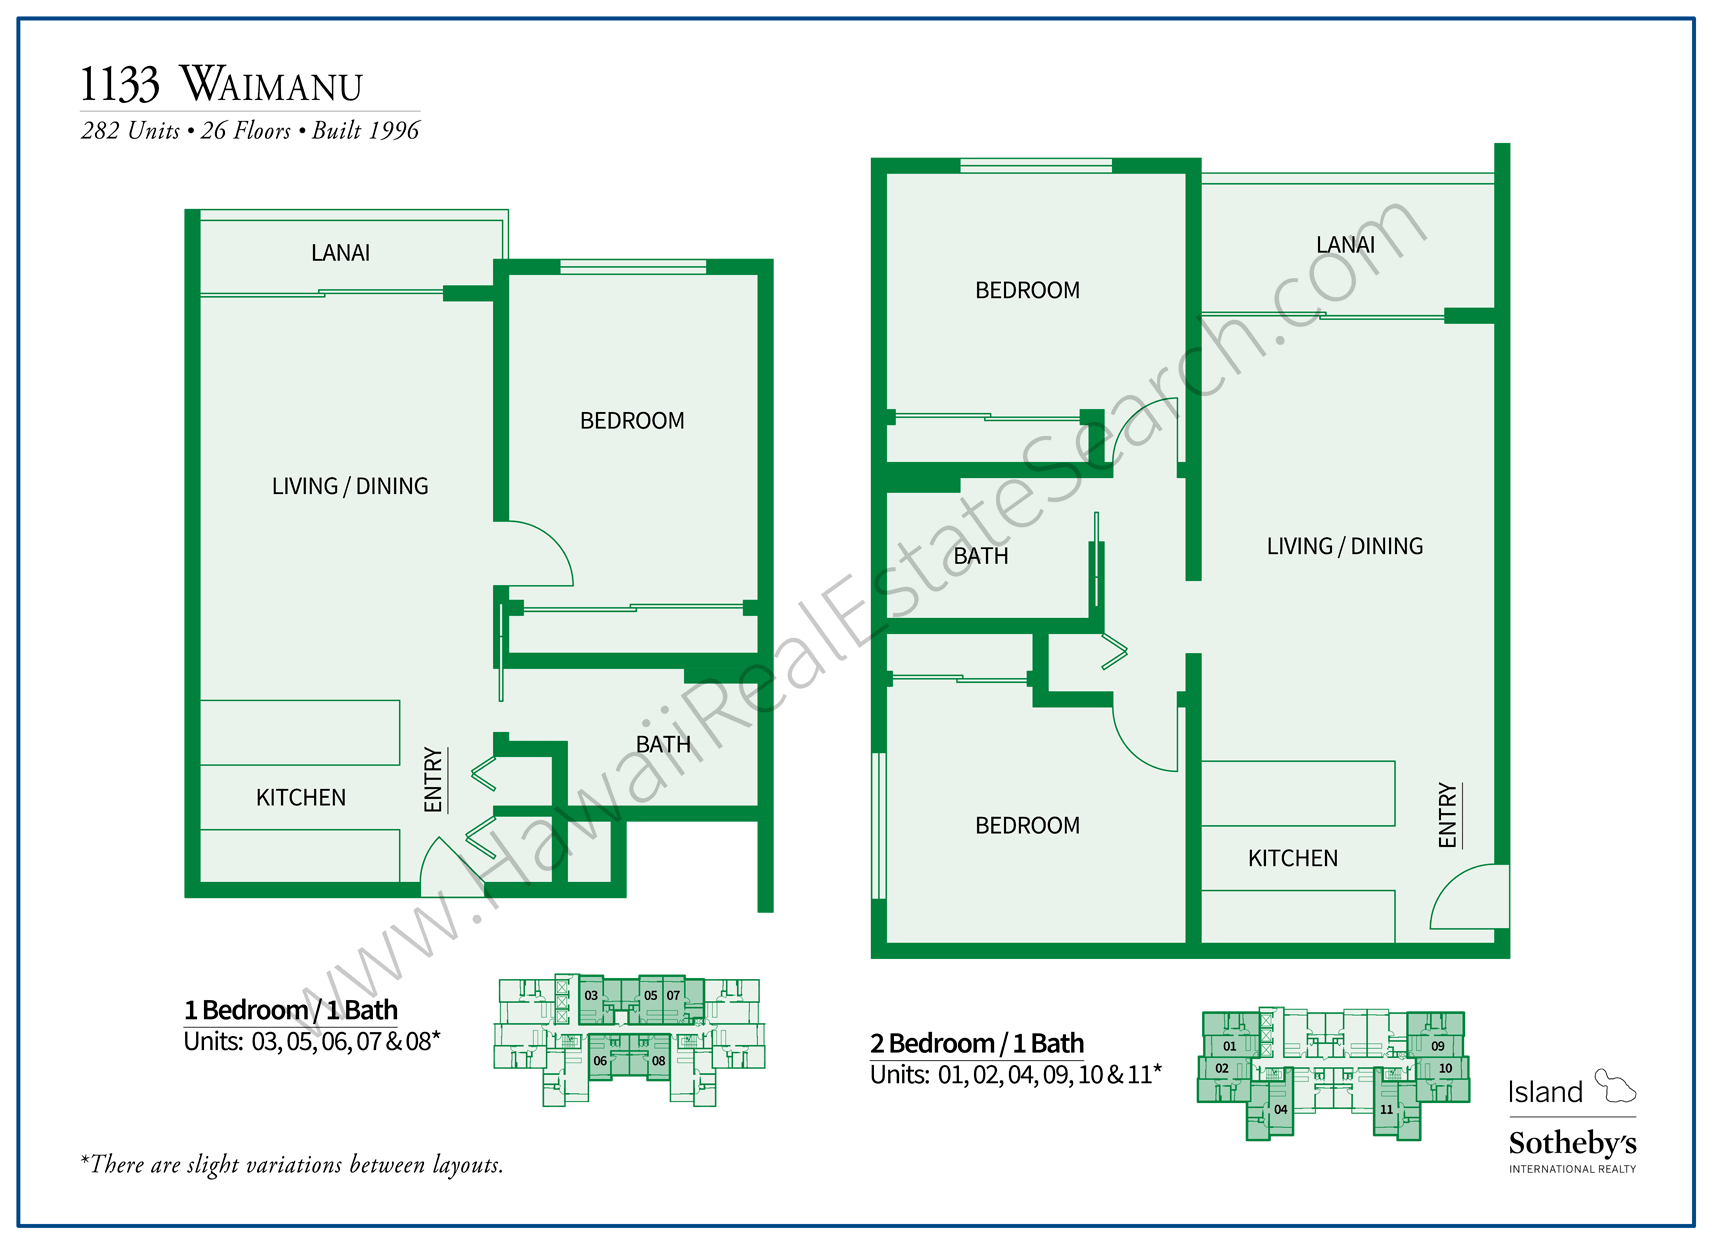 1133 Waimanu Floor Plans Updated